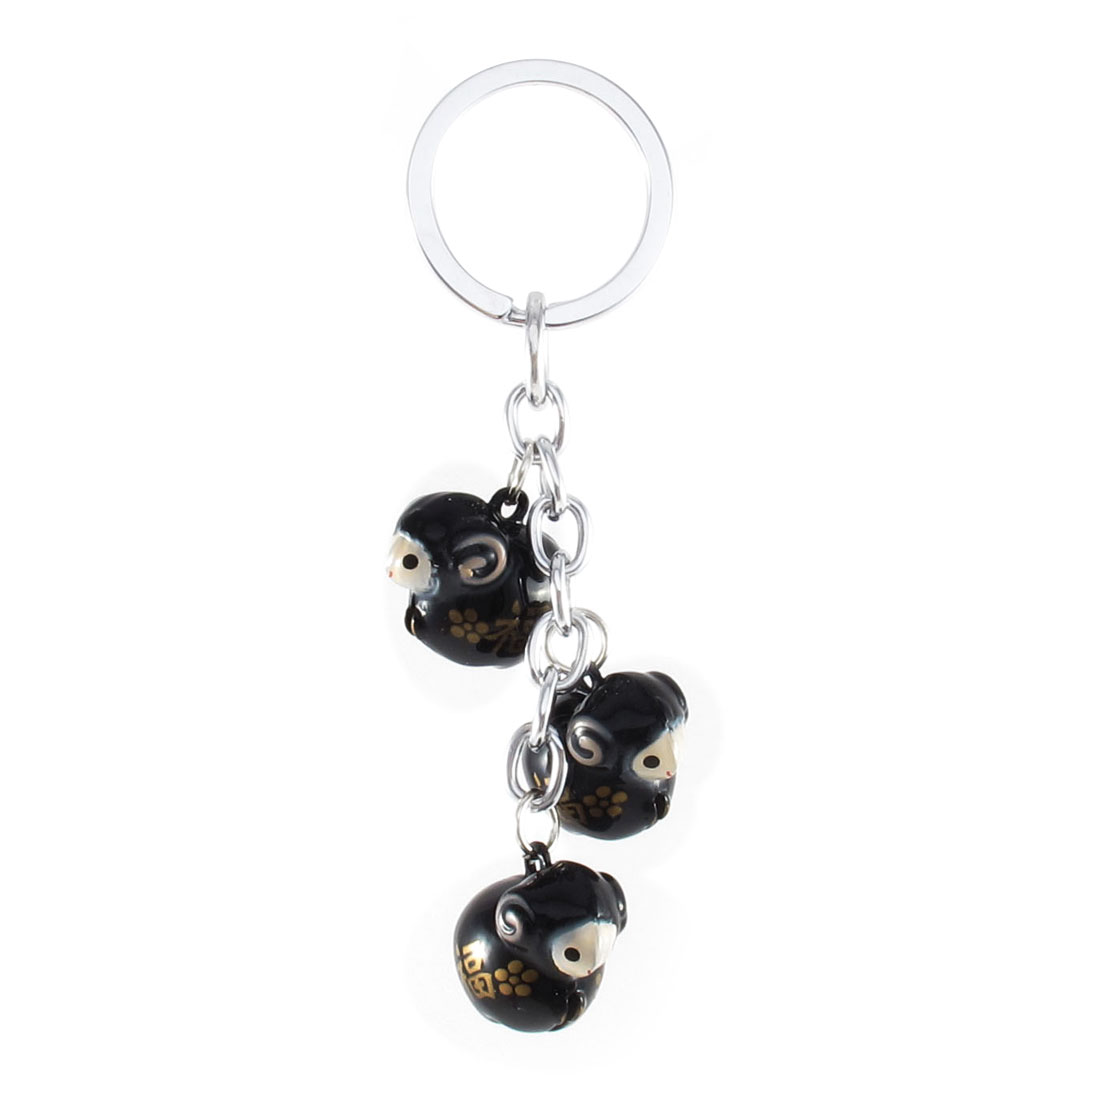 Black 3 Dangling Sheep Style Bells Ring Keychain Keyring